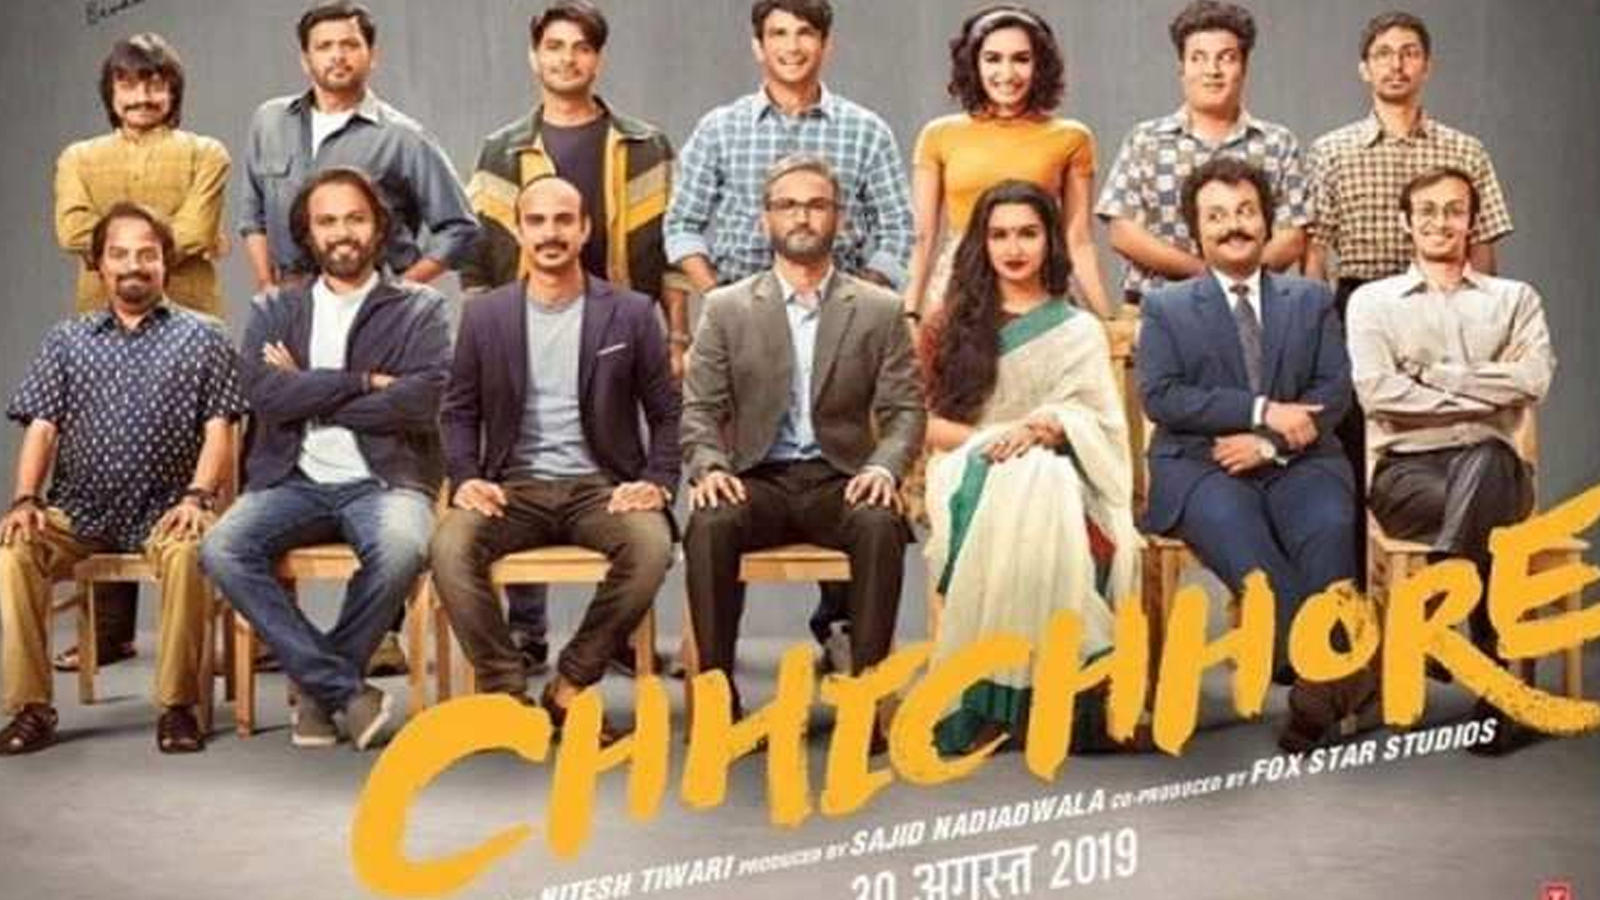 Chhichhore: Public Review of Sushant Singh Rajput and Shraddha Kapoor's movie on friendship